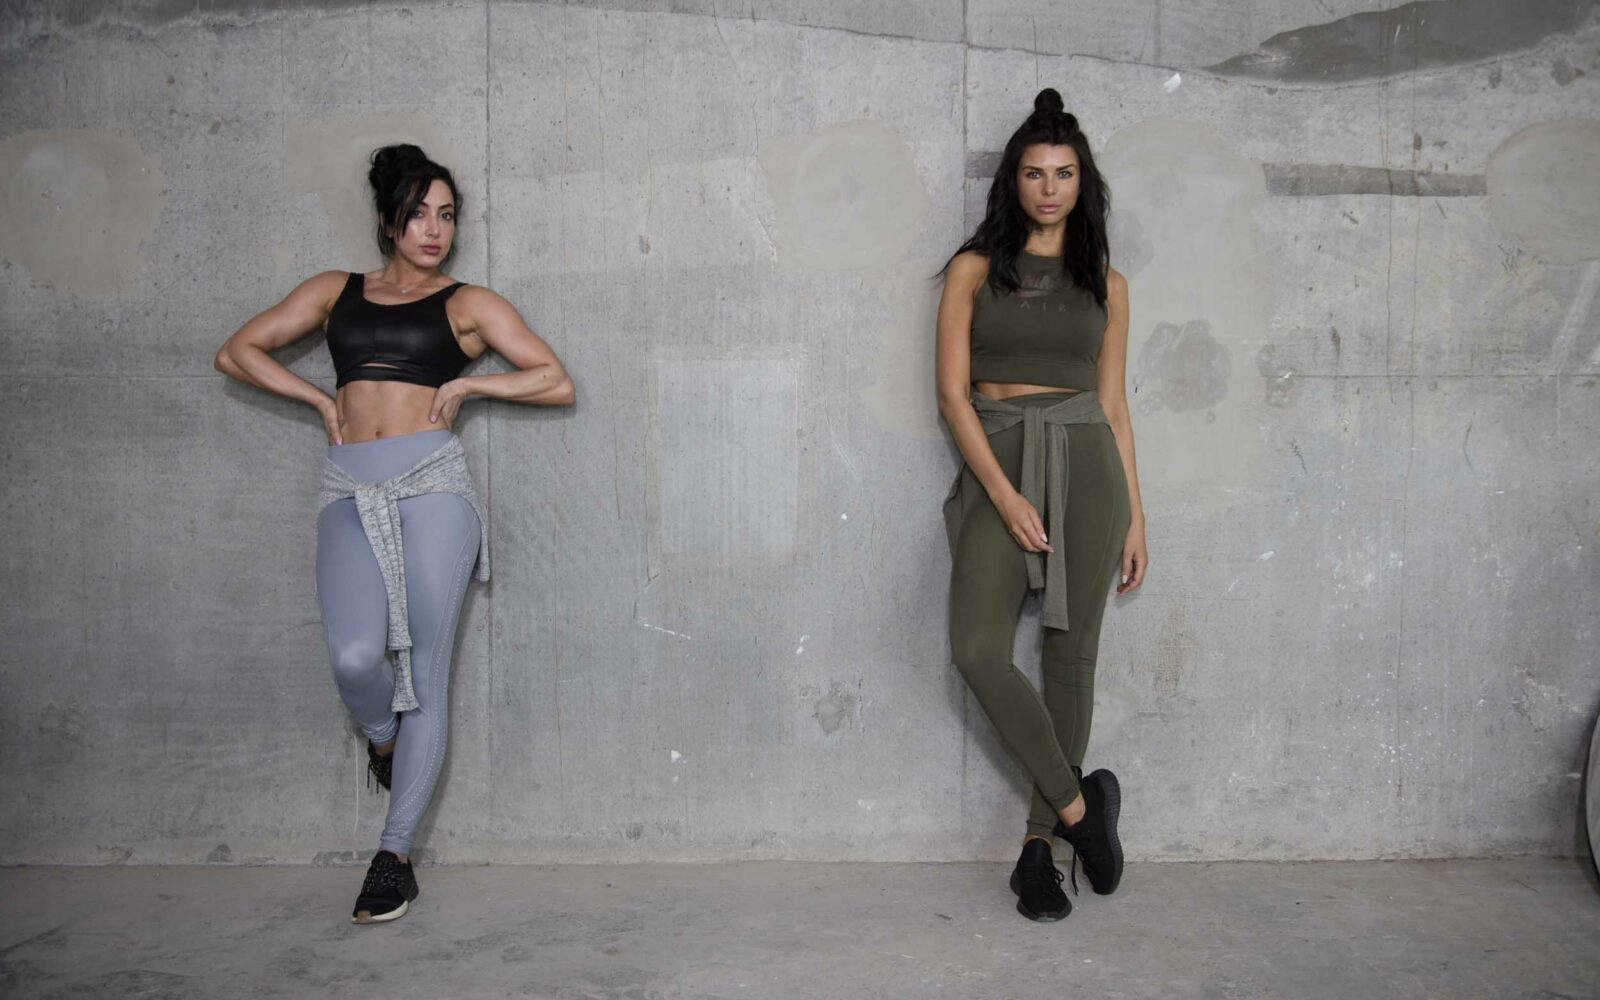 Meet The Five New Faces Of Fitness - MOJEH